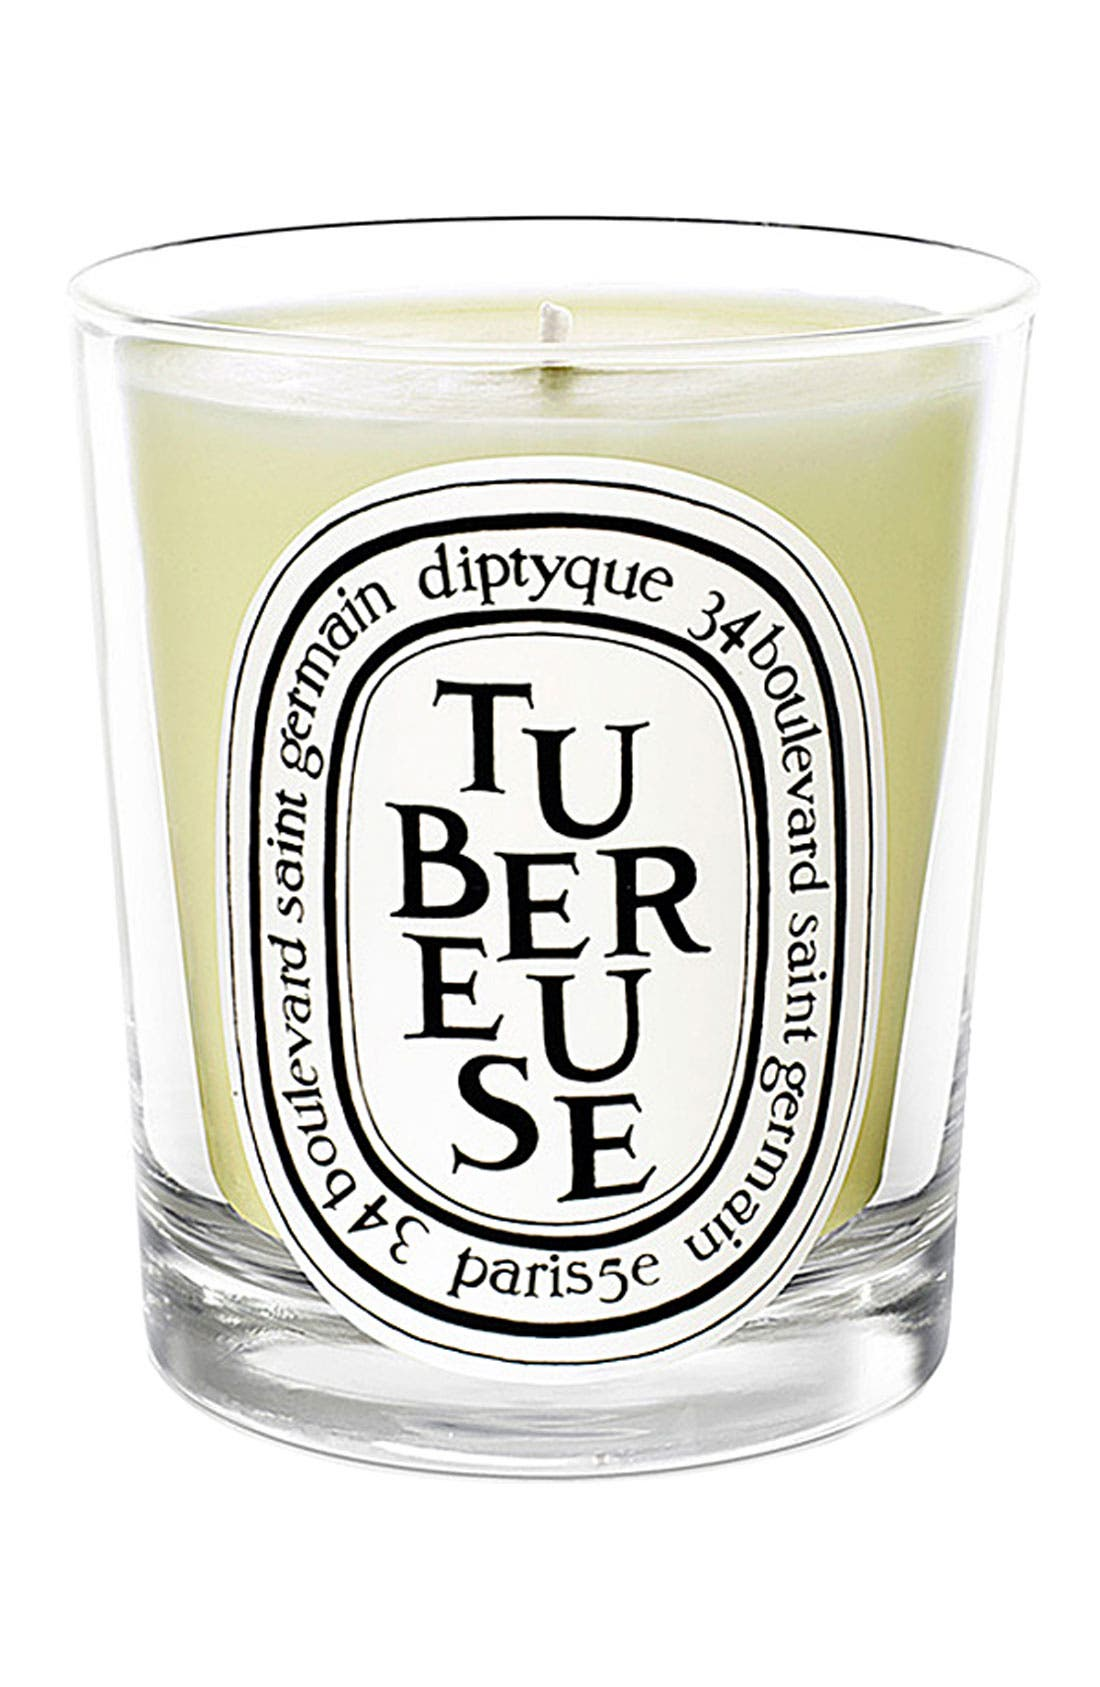 Alternate Image 1 Selected - diptyque Tubereuse/Tuberose Scented Candle